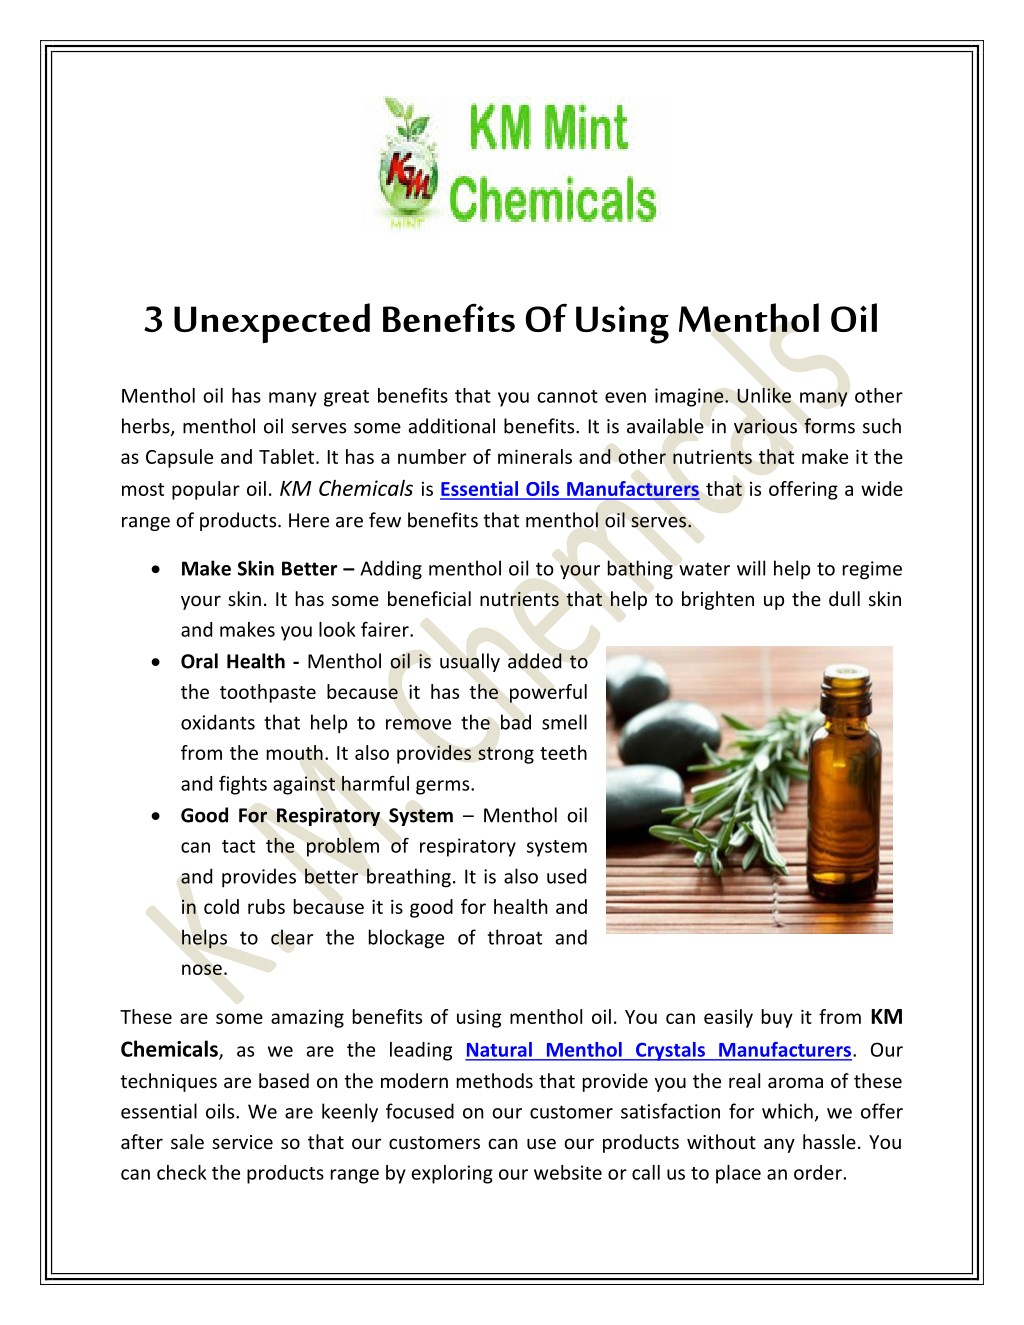 PPT - 3 Unexpected Benefits Of Using Menthol Oil PowerPoint